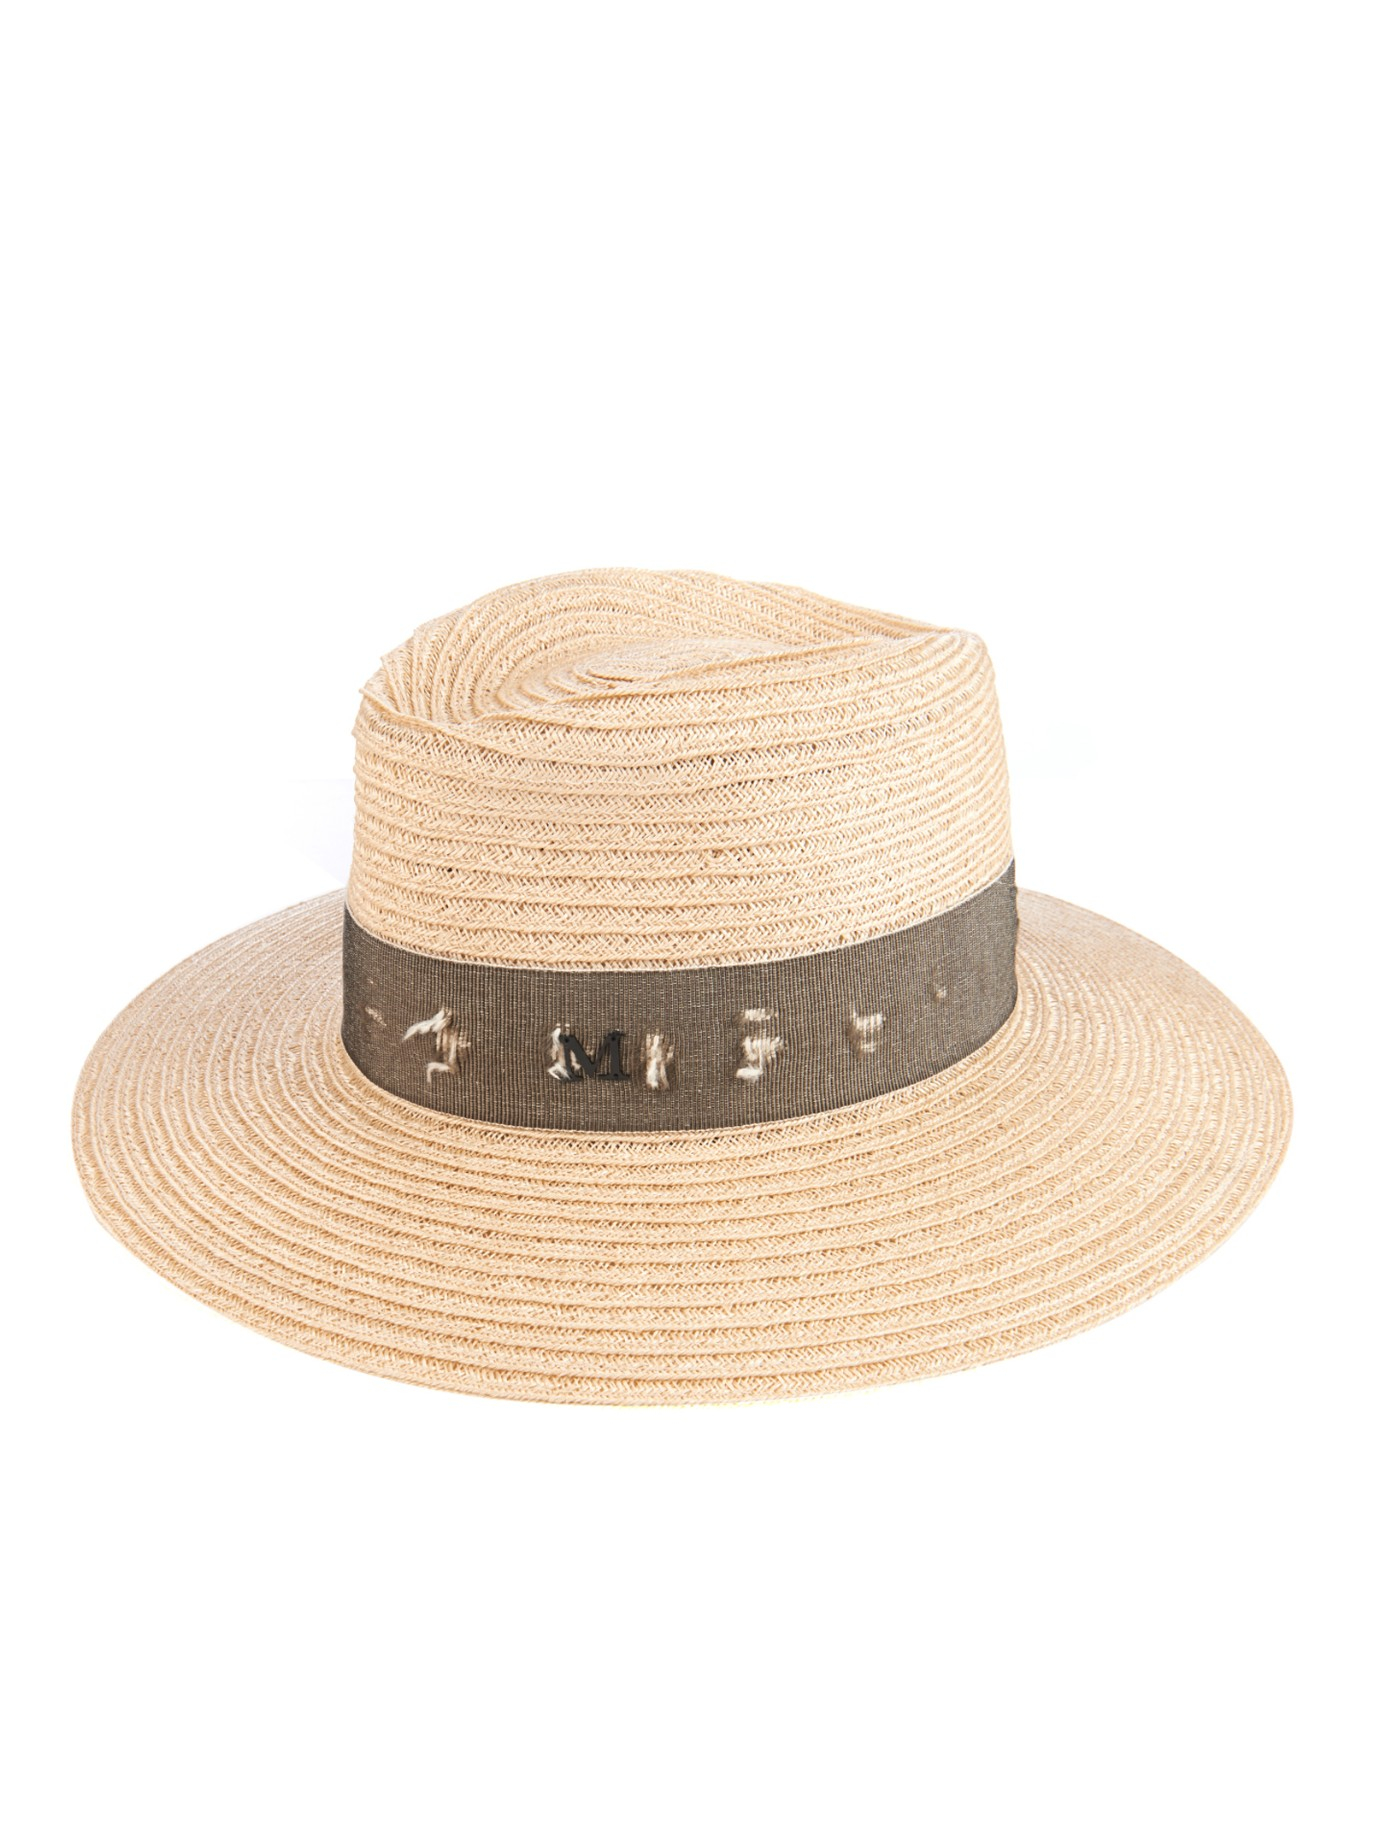 48c49cdfd0c Maison Michel Charles Destroyed-band Straw Hat in Natural - Lyst